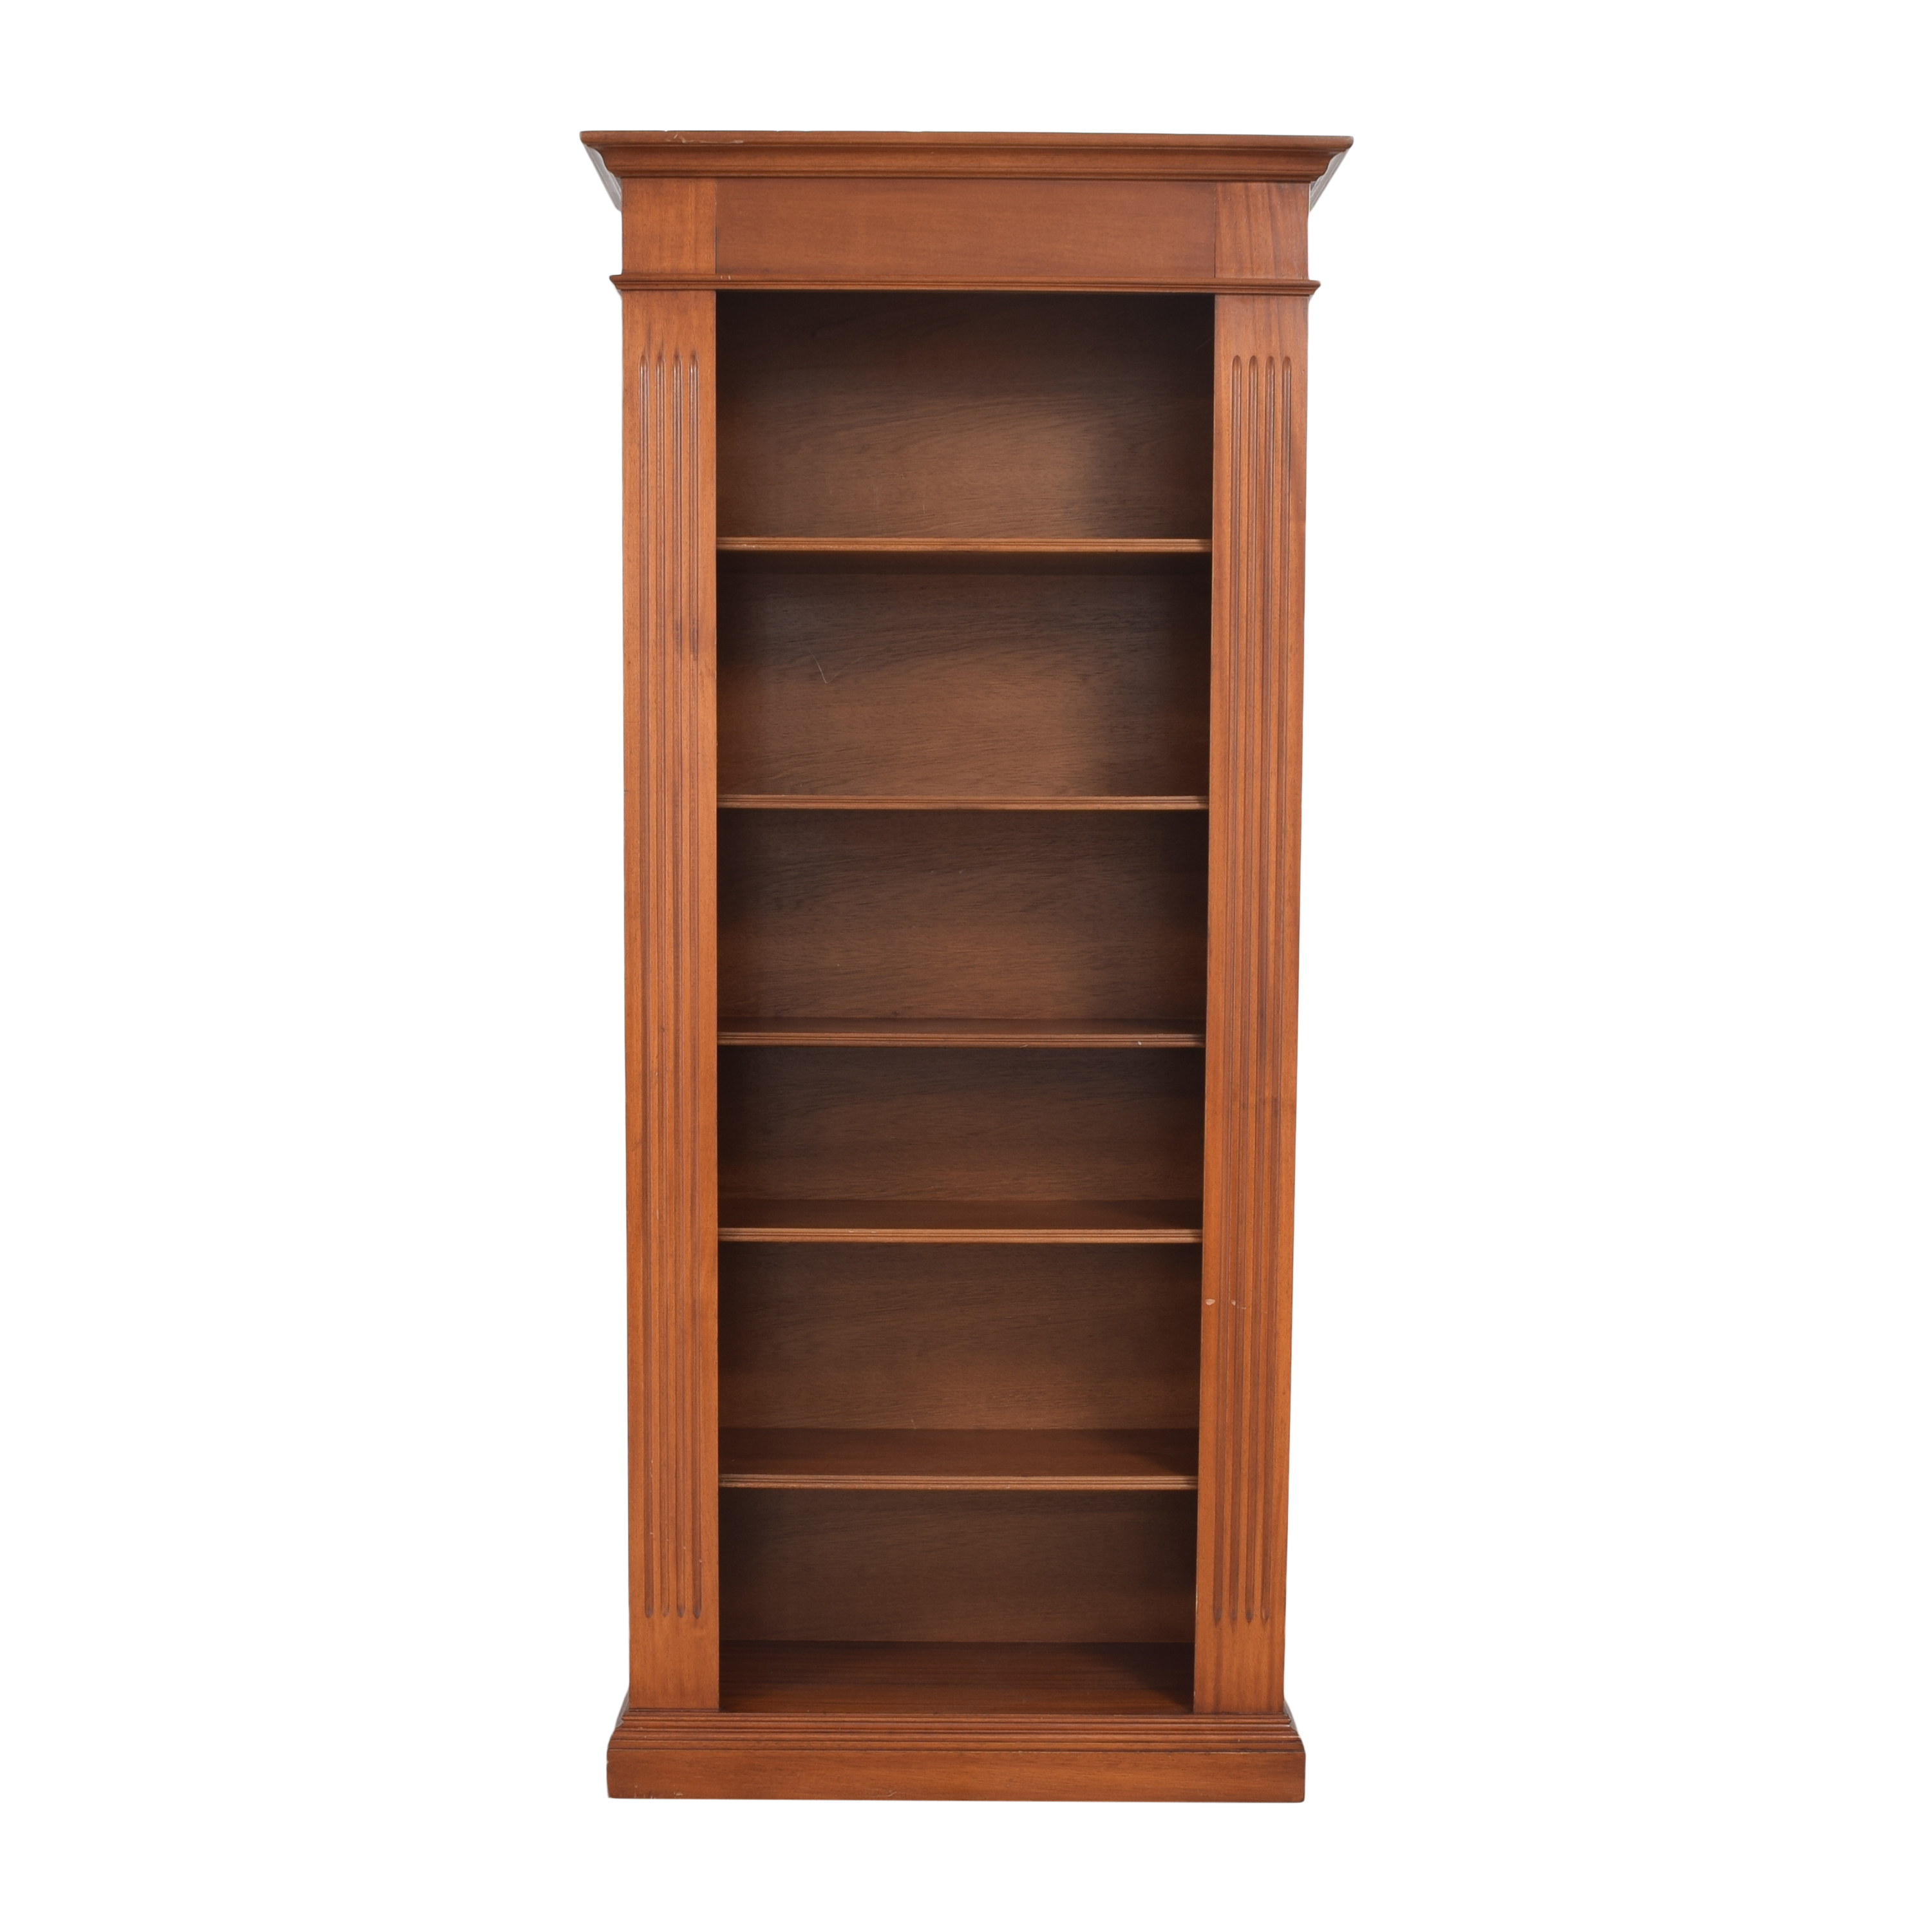 Bloomingdale's Bloomingdale's Tall Bookcase Bookcases & Shelving